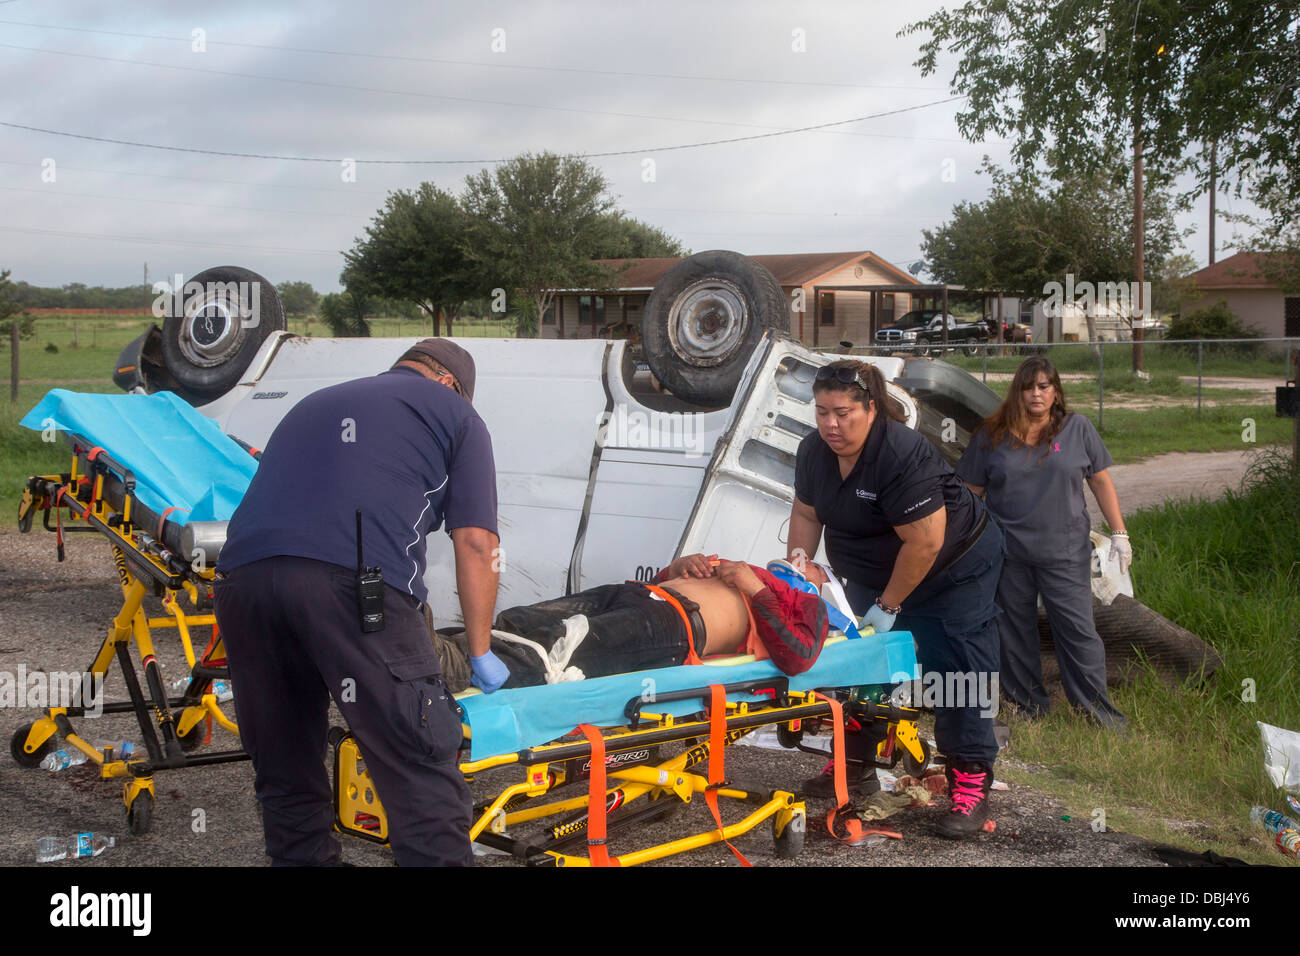 Falfurrias, Texas - An van holding 26 undocumented immigrants from Central America overturned on Texas Highway 285. - Stock Image